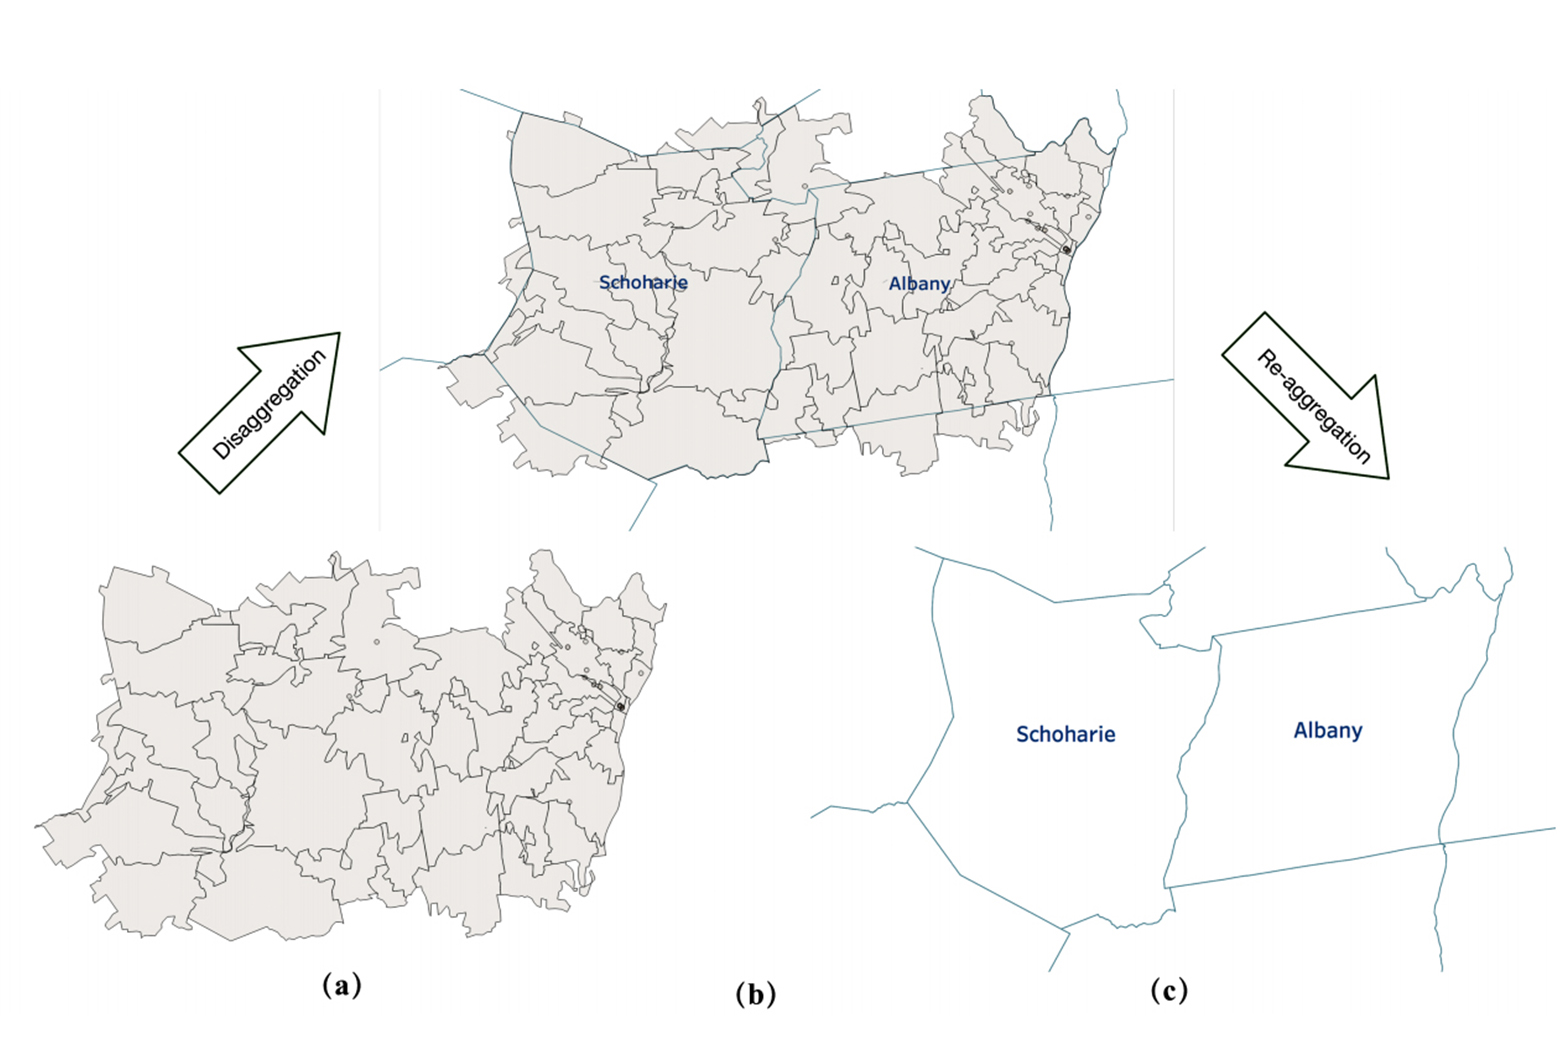 Geoalign example